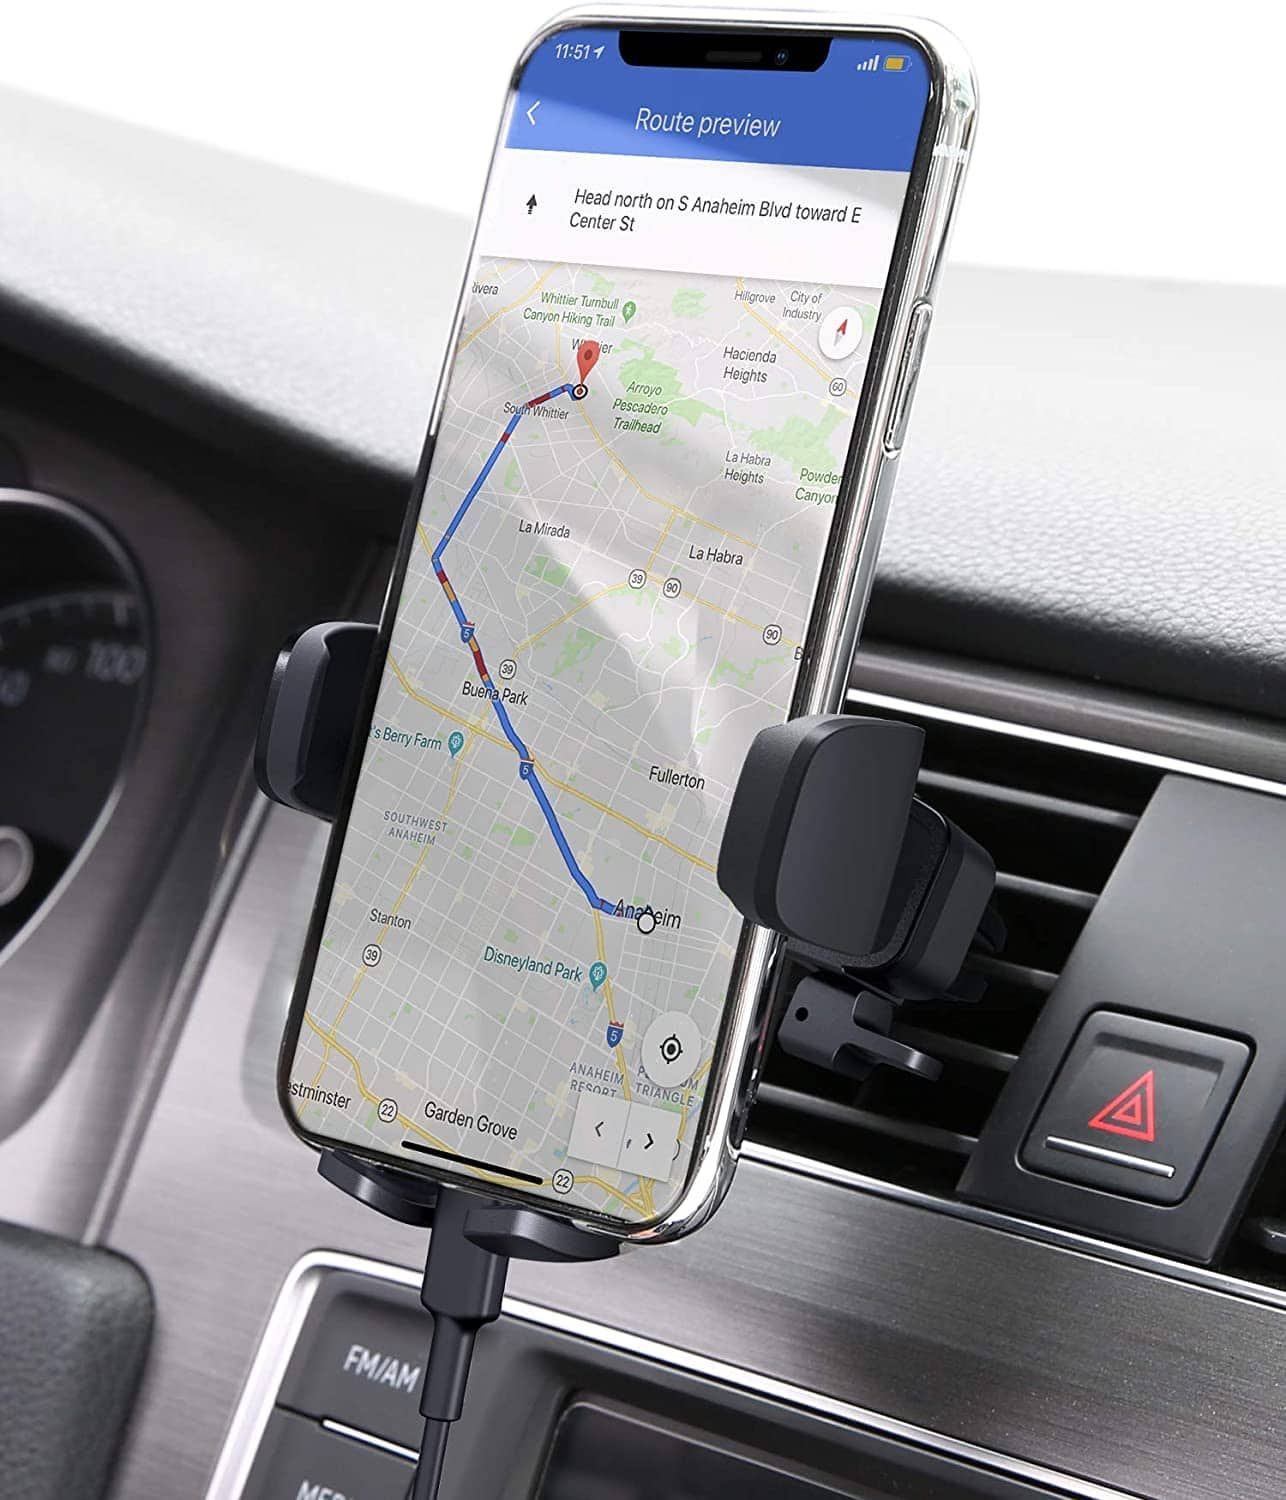 25% off AUKEY Car Phone Mount Air Vent Phone Holder for Car Compatible with iPhone 11 Pro/11/Xs/8/7/6, Galaxy S10/S10+/S9/S9+, Note 10,LG,Huawei,Pixel and Other $6.64